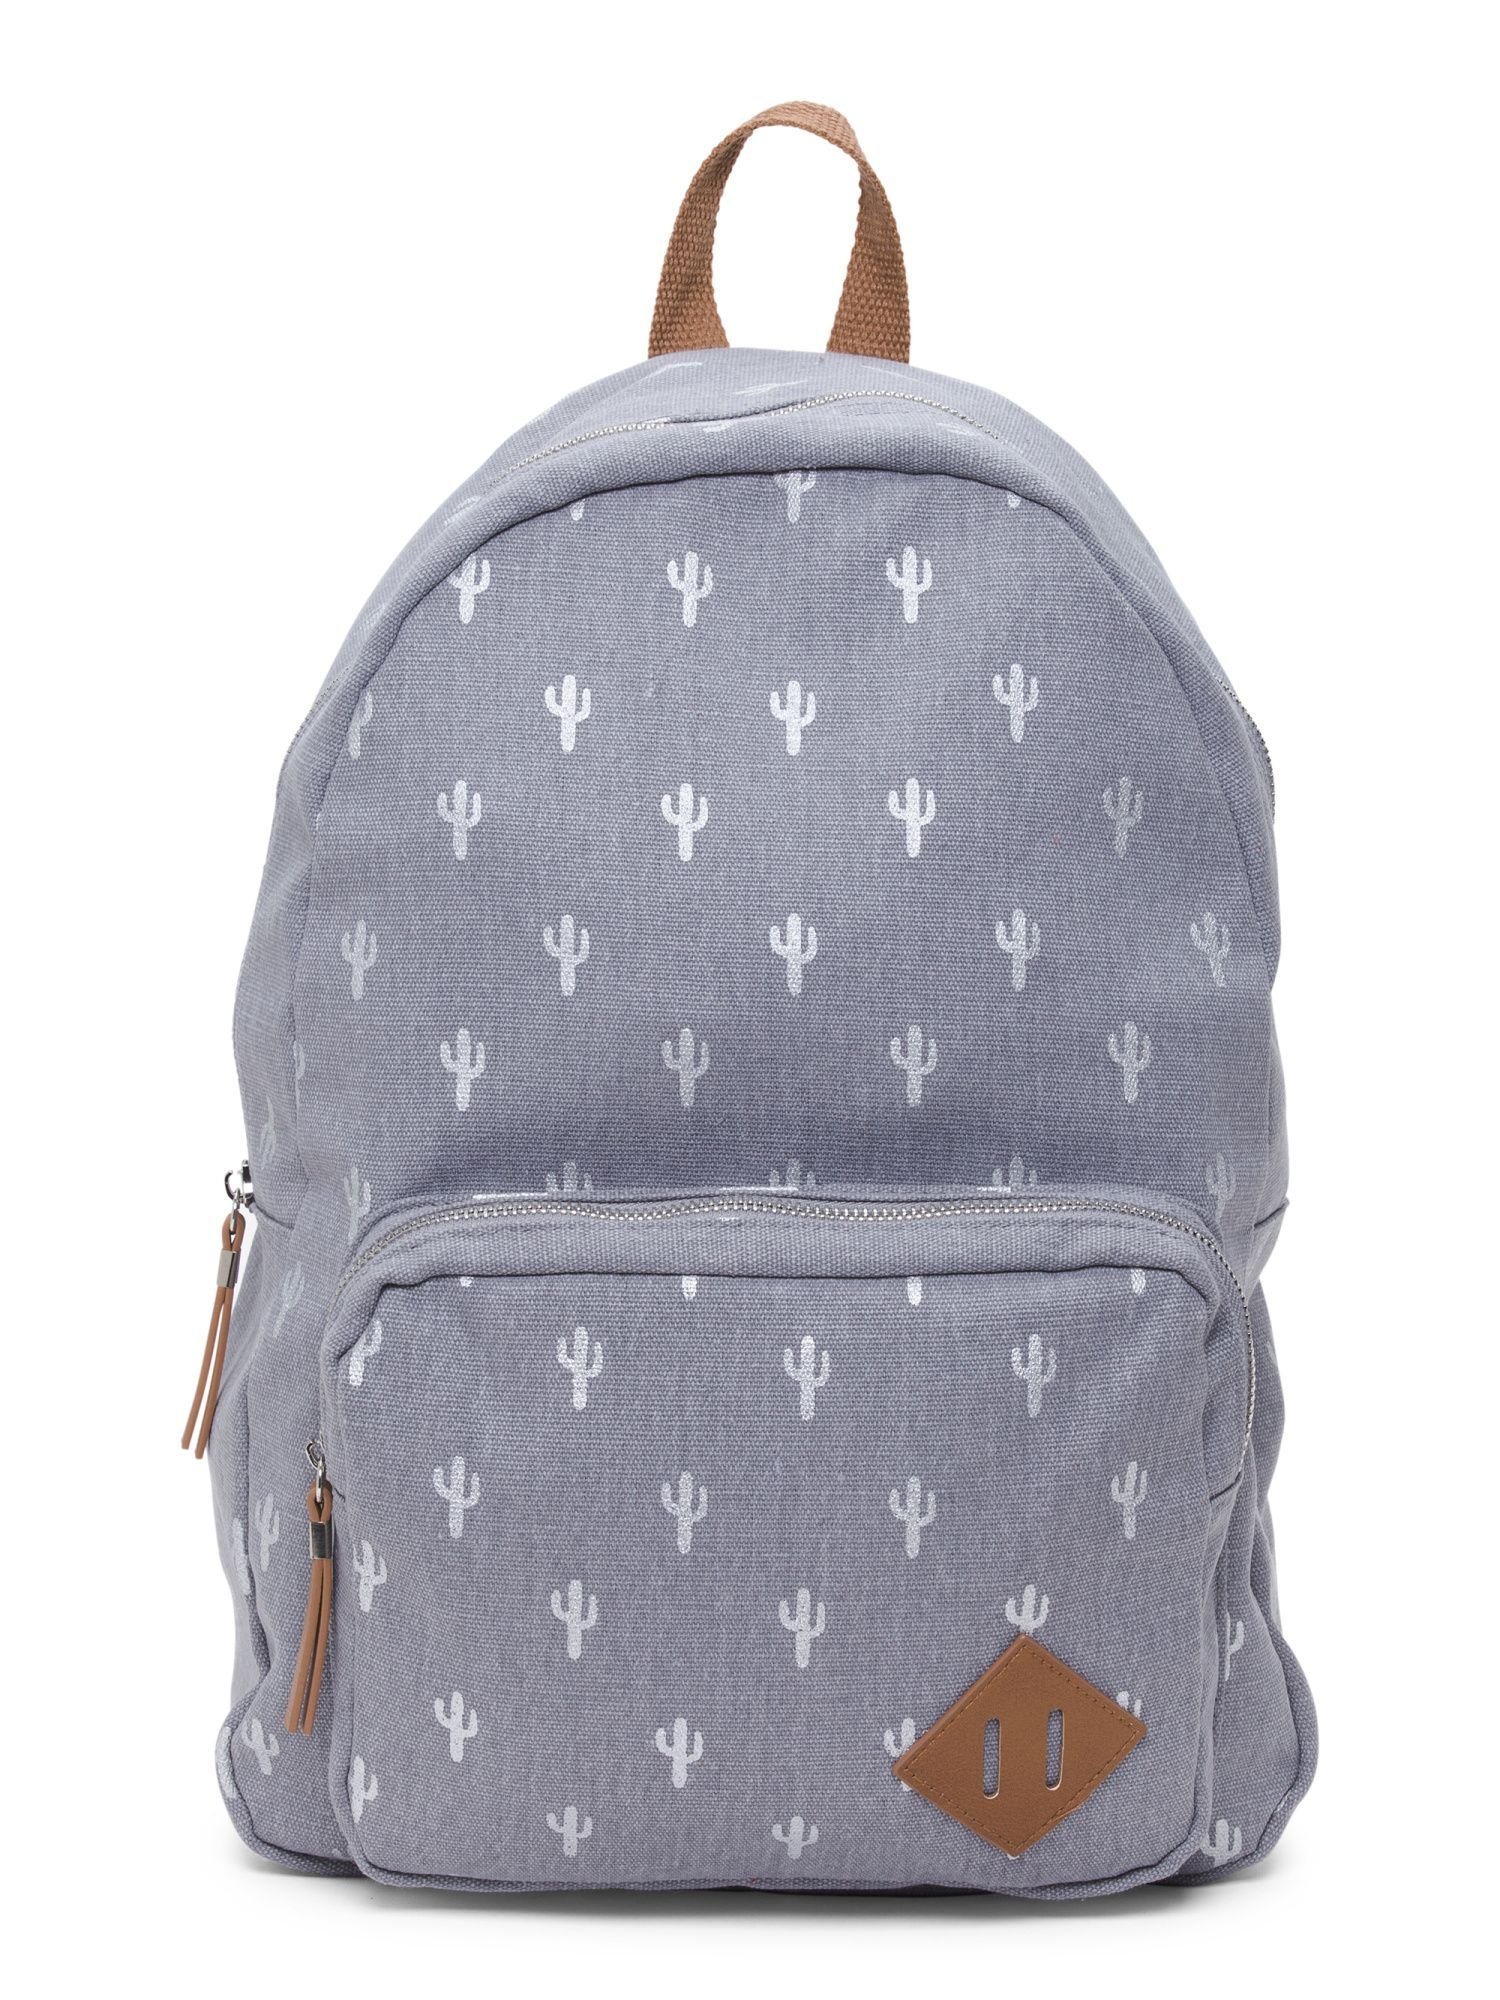 1a28575326 Cactus Foil Print Canvas Backpack